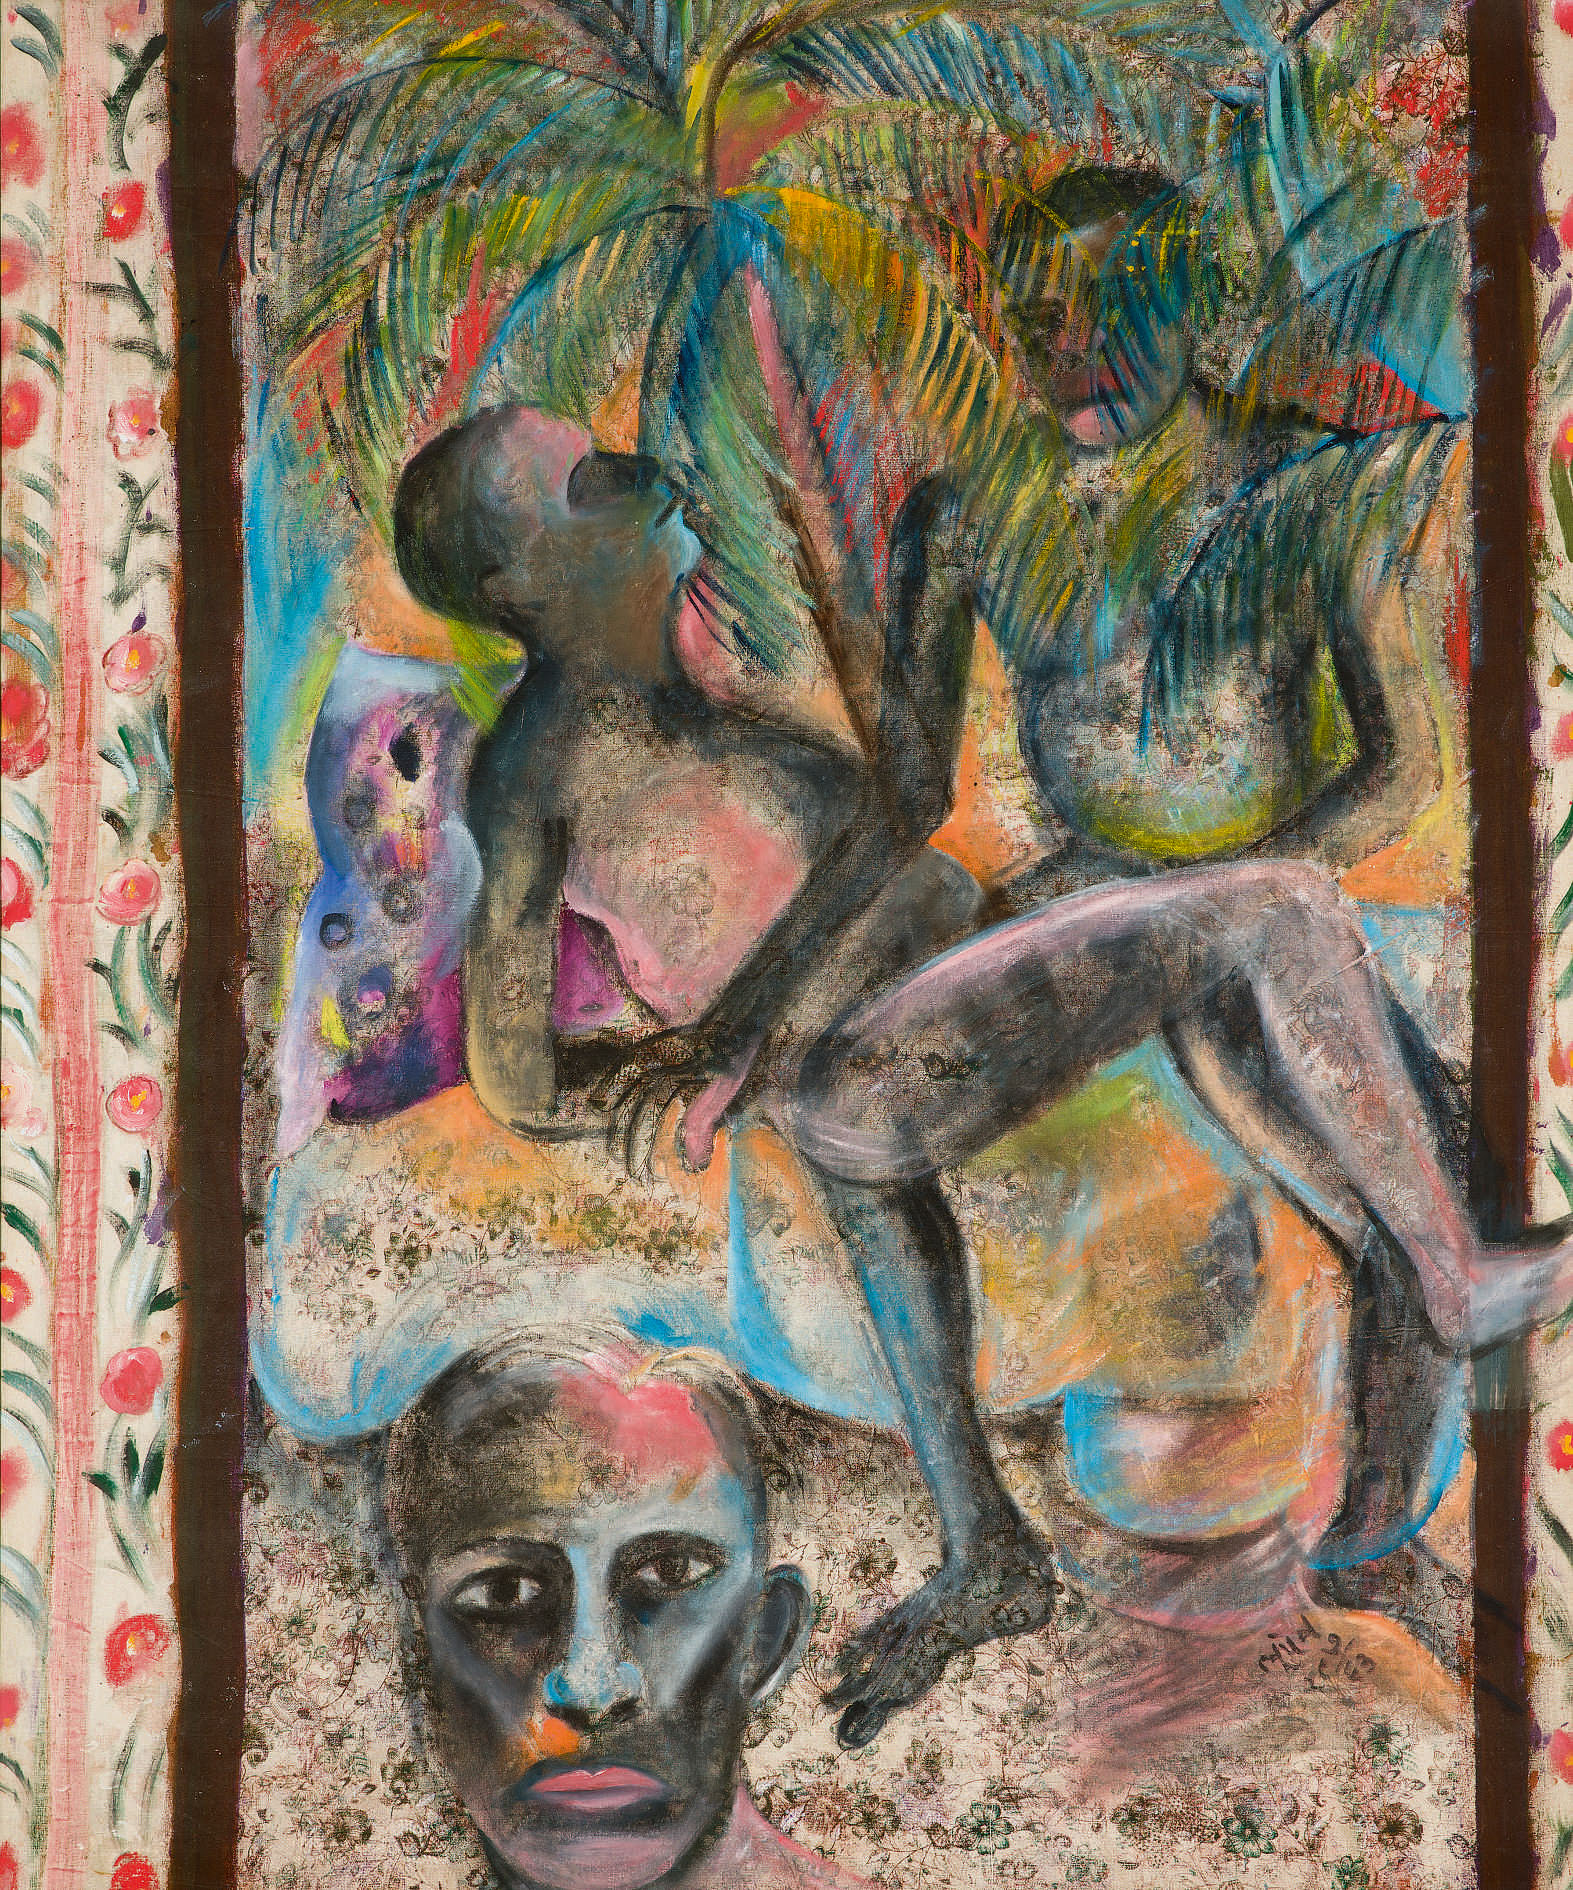 10333, Lot 66, Bhupen Khakhar, In the Coconut Groves